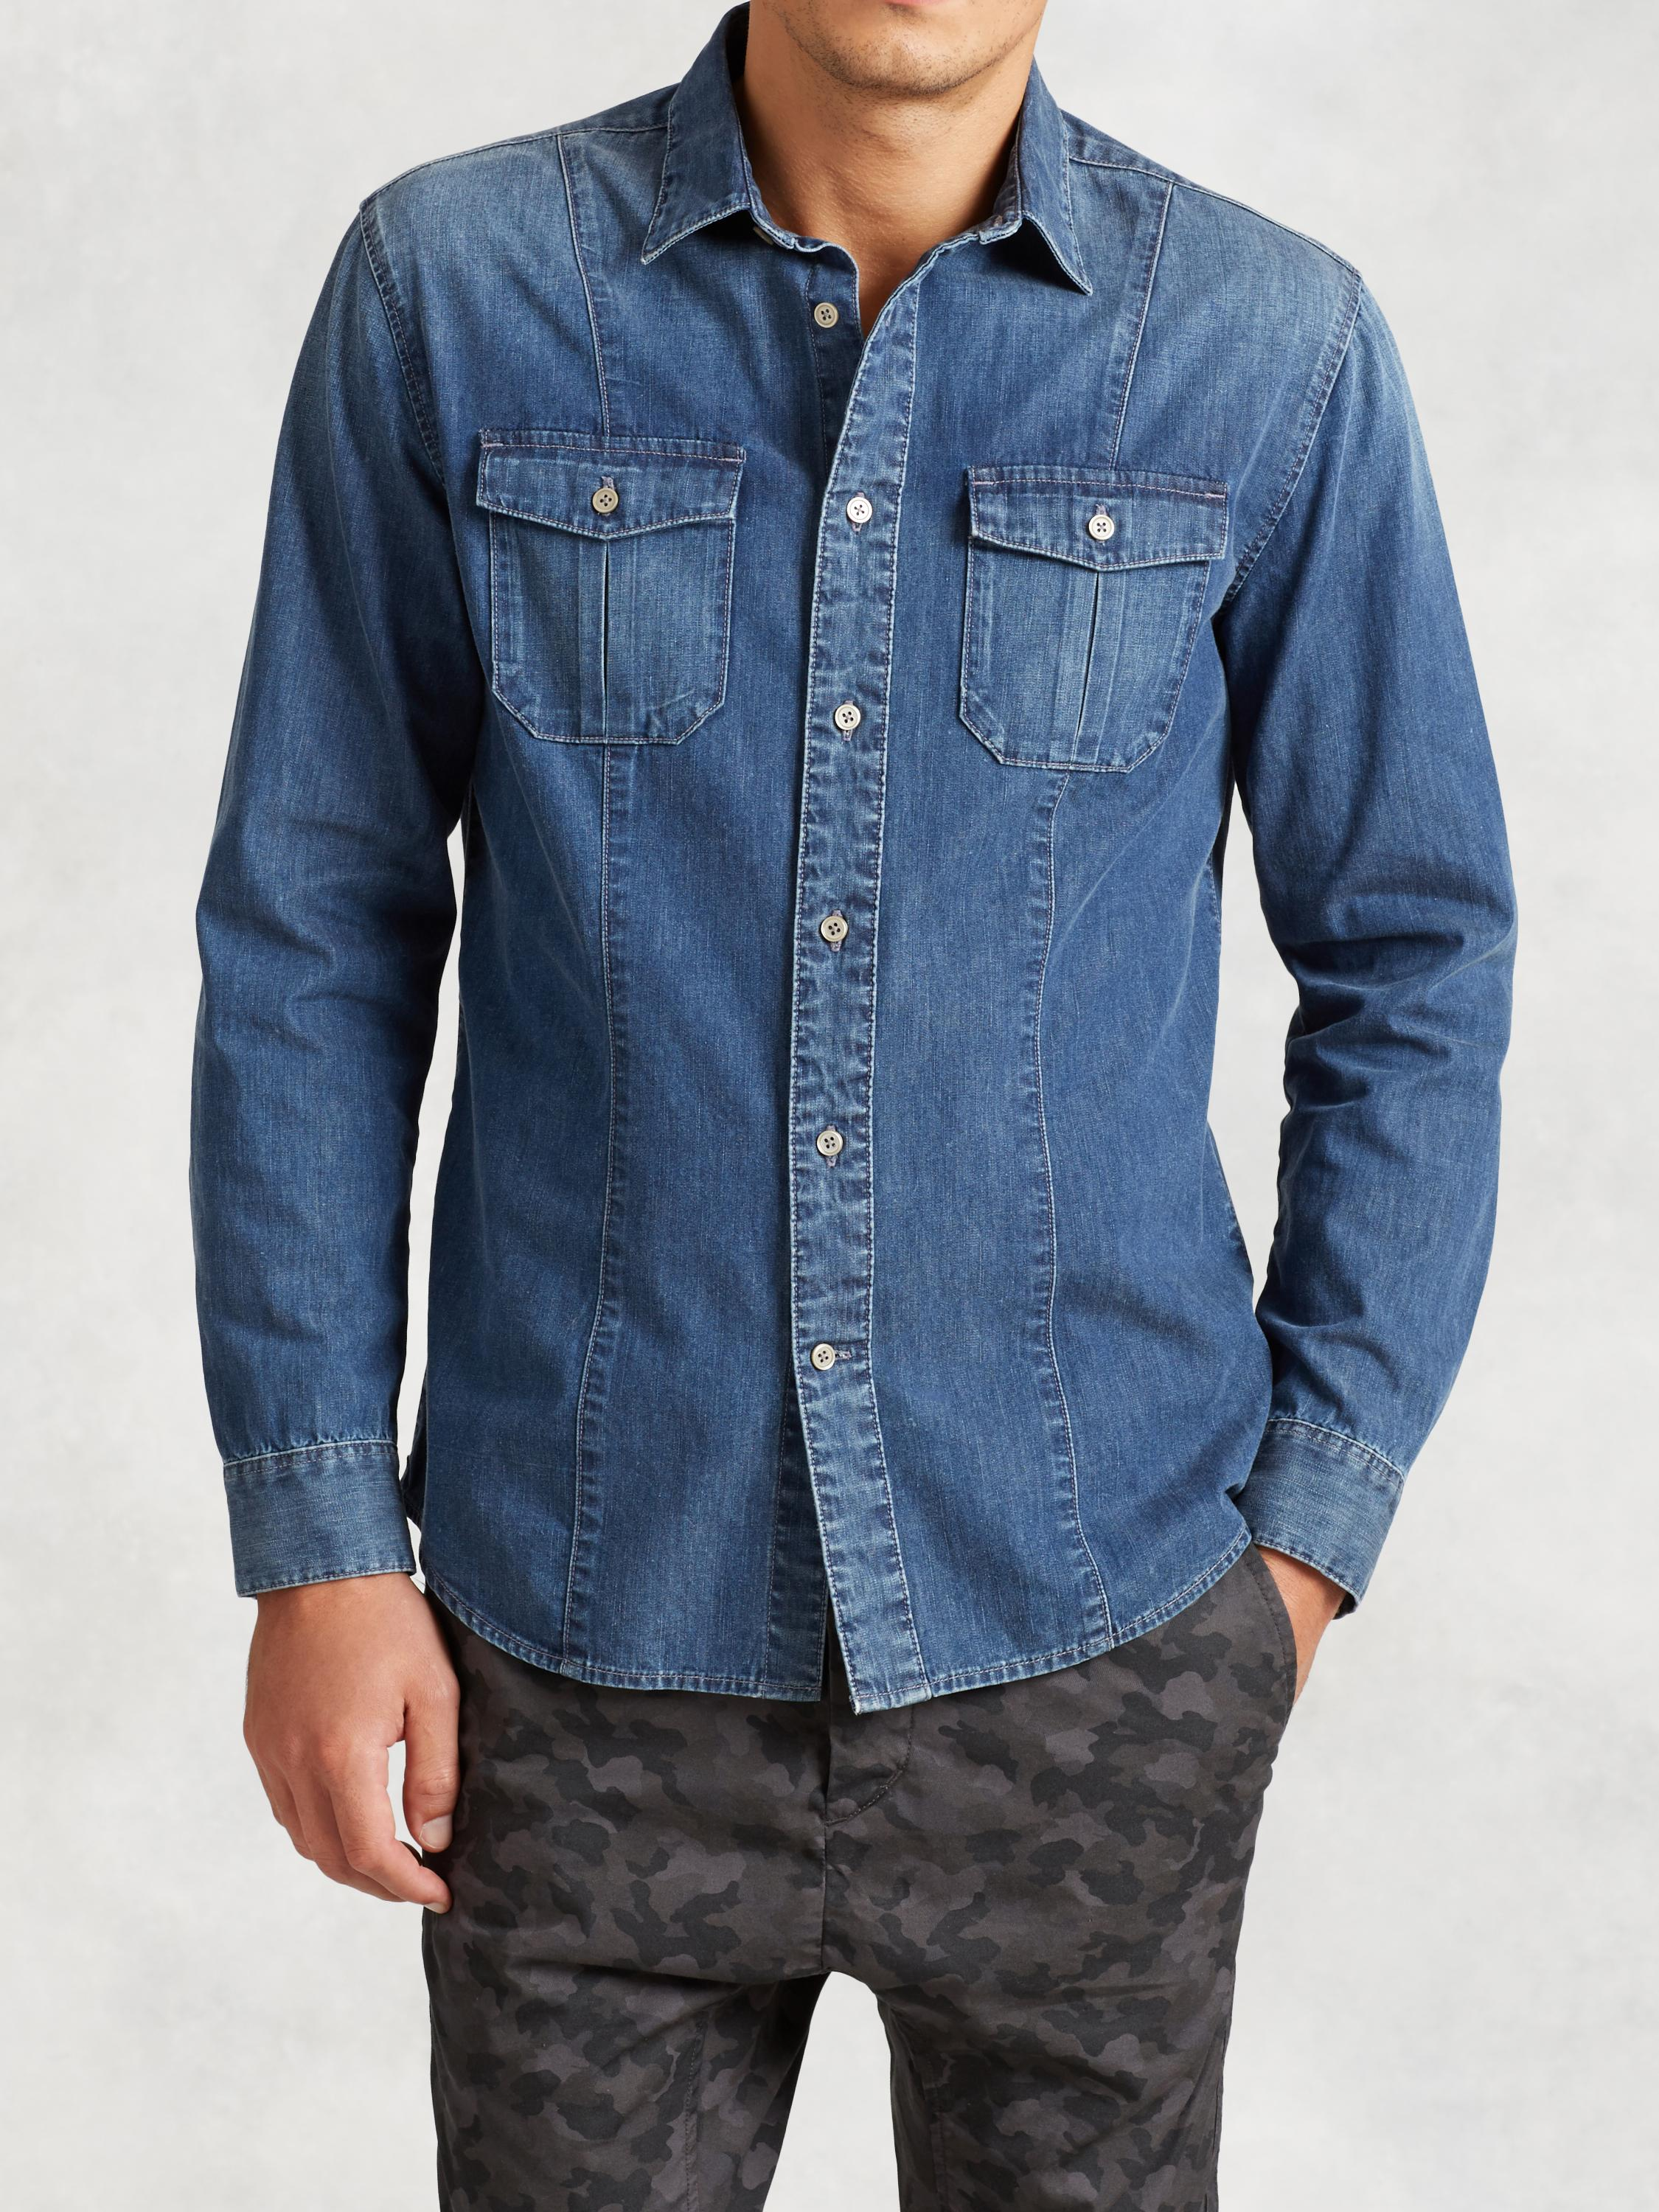 Cotton Indigo Shirt